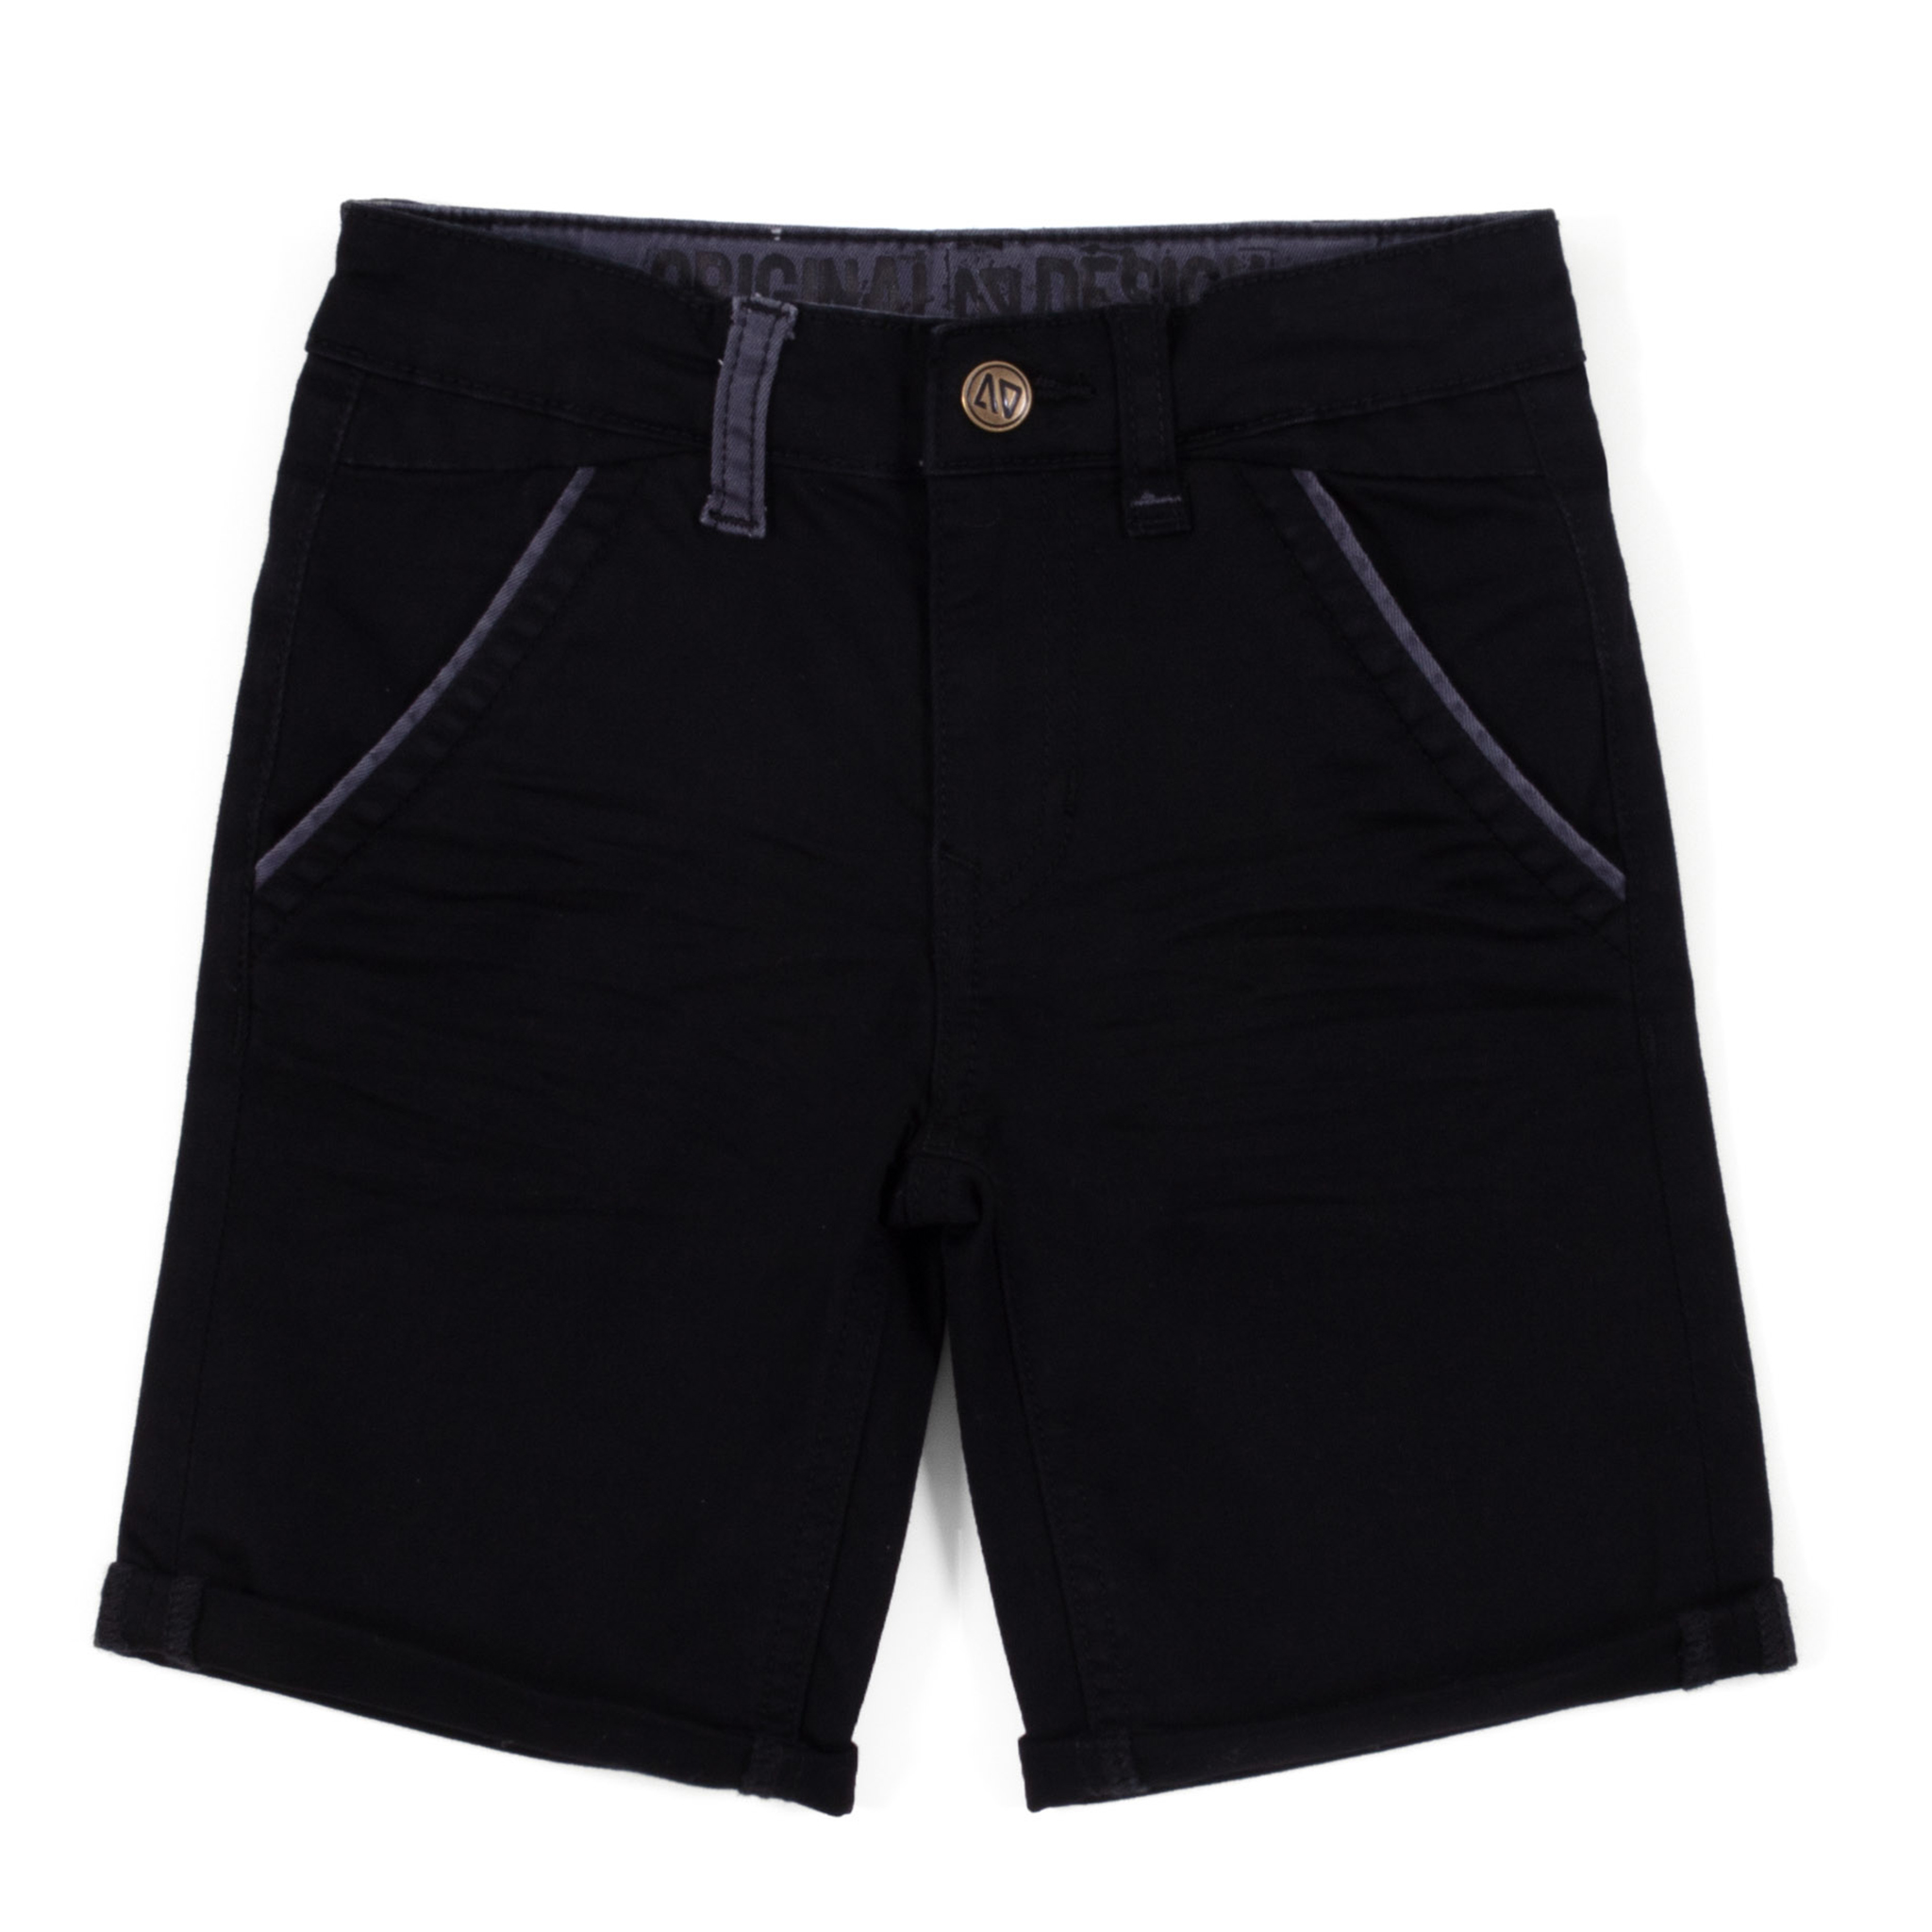 Bermudas - Black - Boys